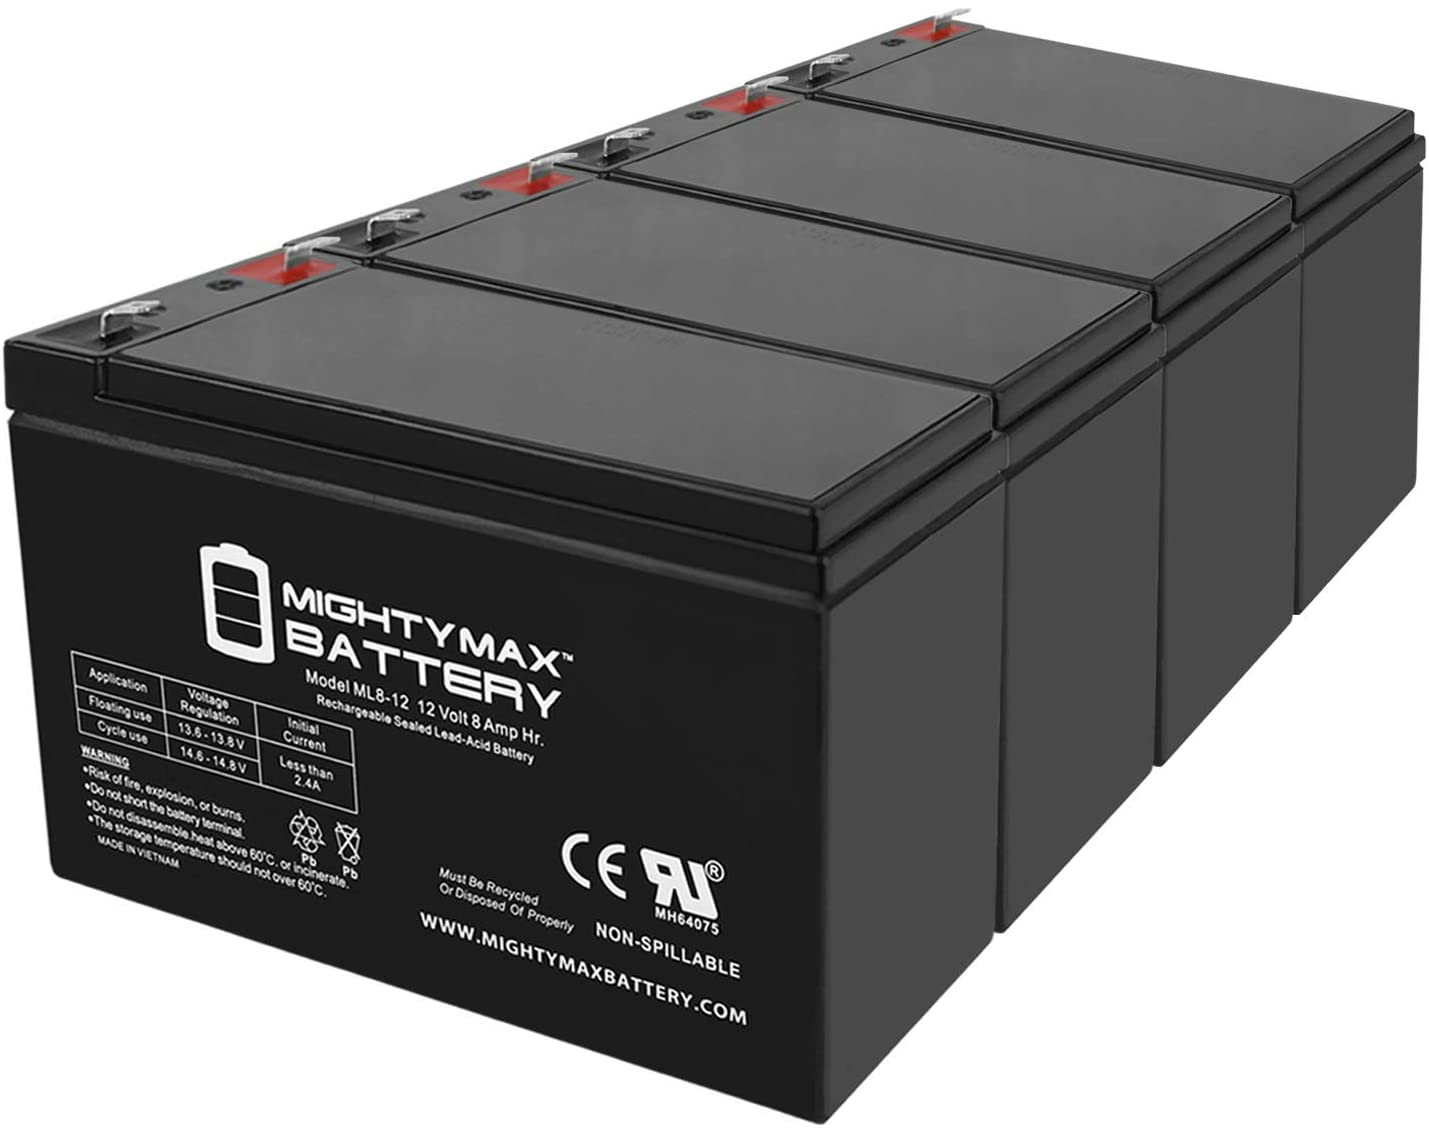 Mighty Max Battery 12V Over item handling ☆ 8Ah Very popular! Texas Hunter Replaces 50 lb.